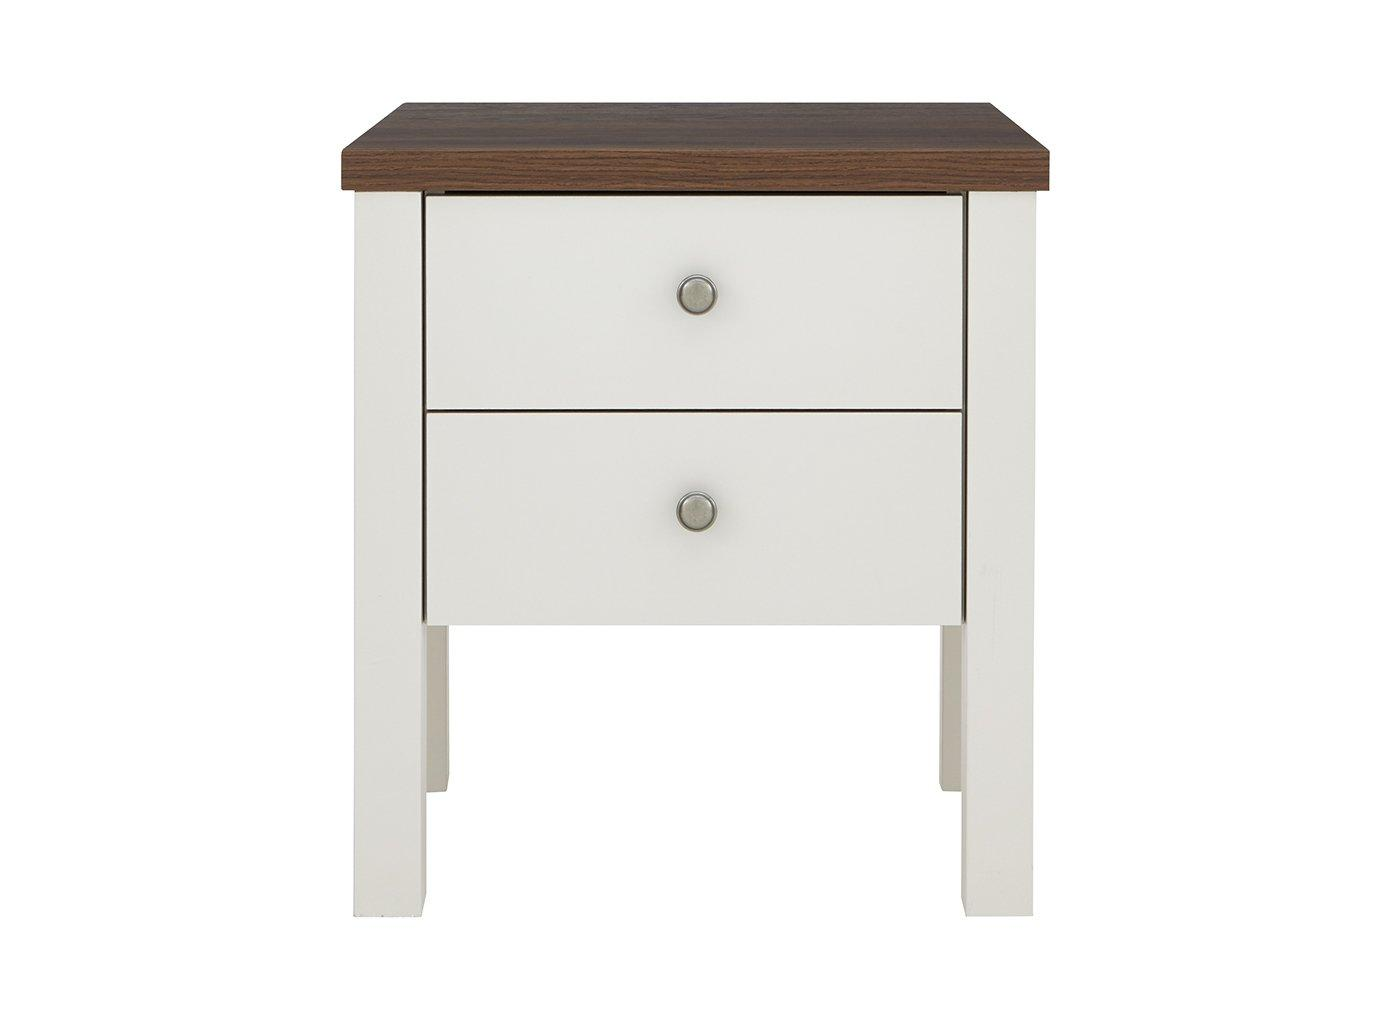 sloane-2-drawer-bedside-table---champagne-and-dark-wood